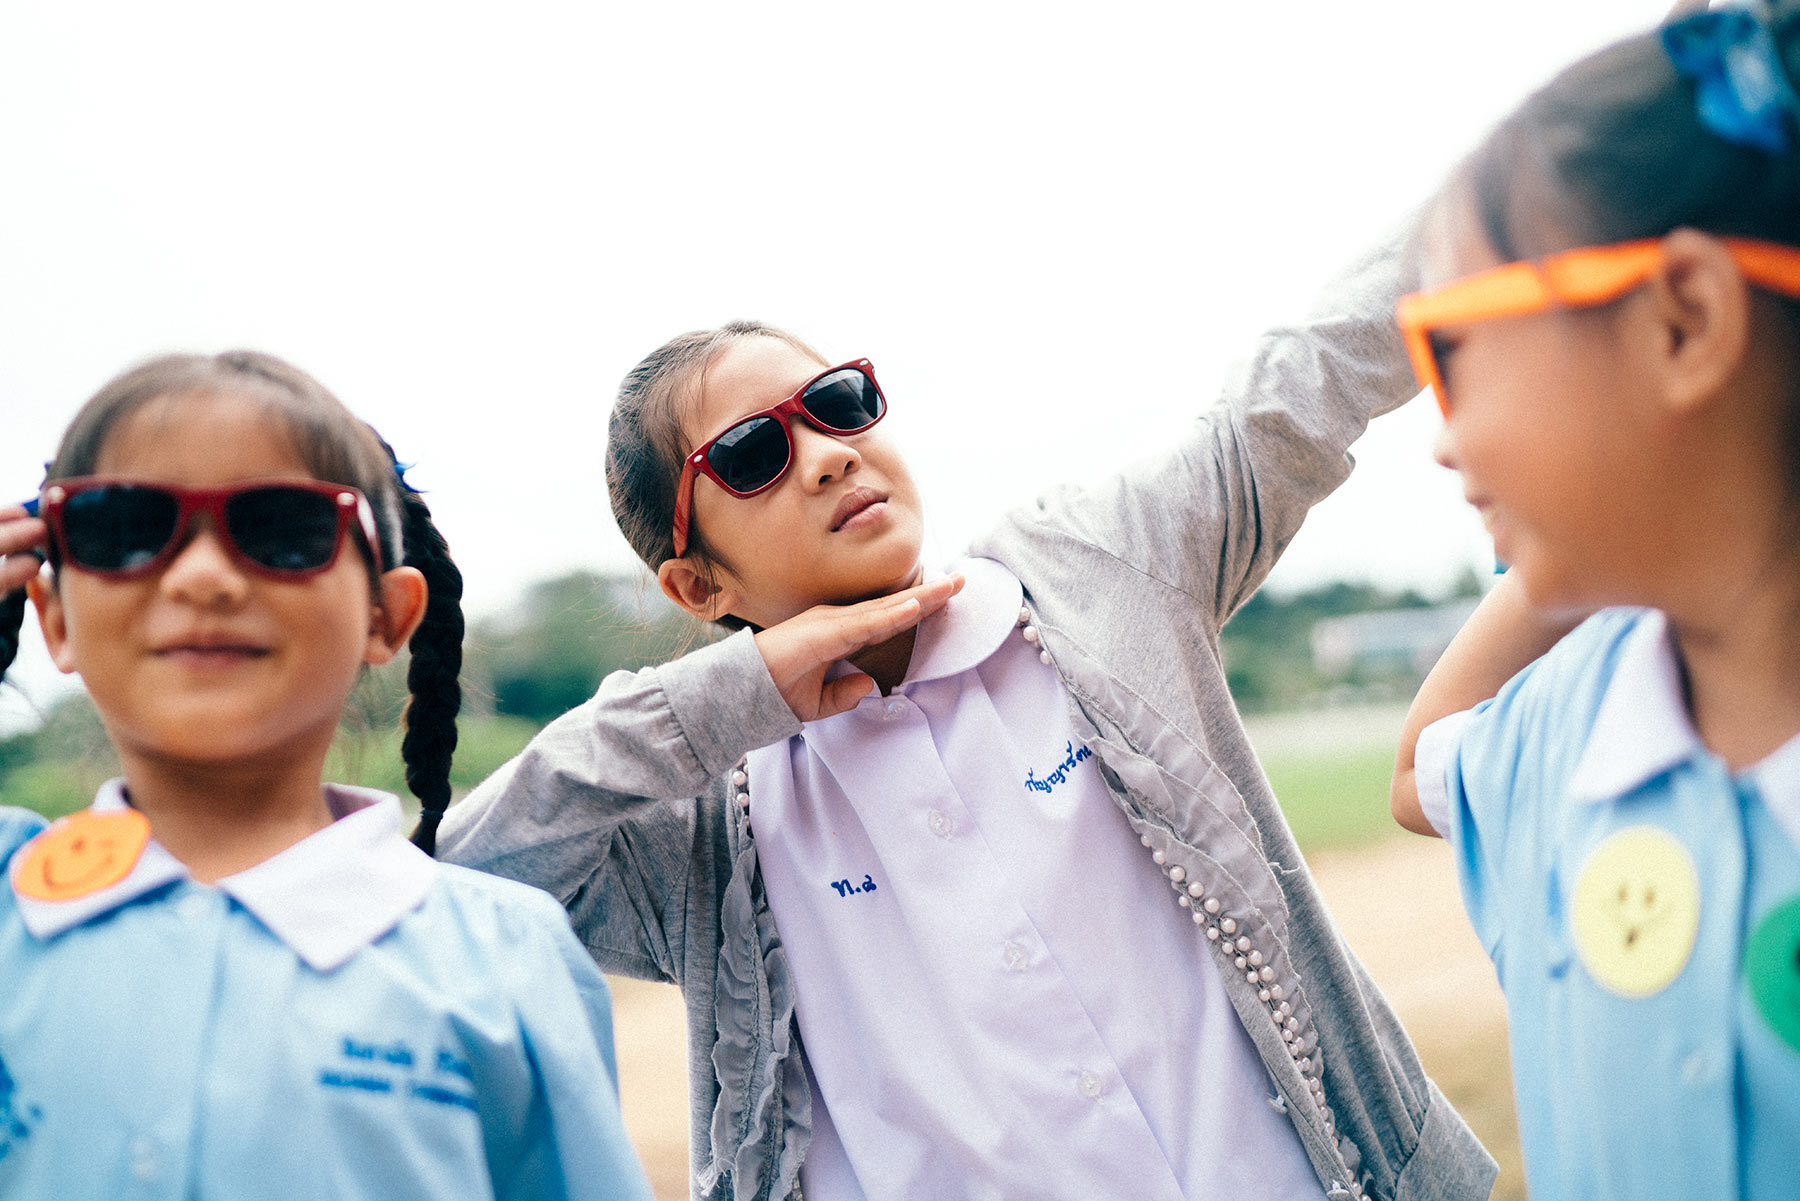 Three-young-girls-wearing-sunglasses-and-acting-silly